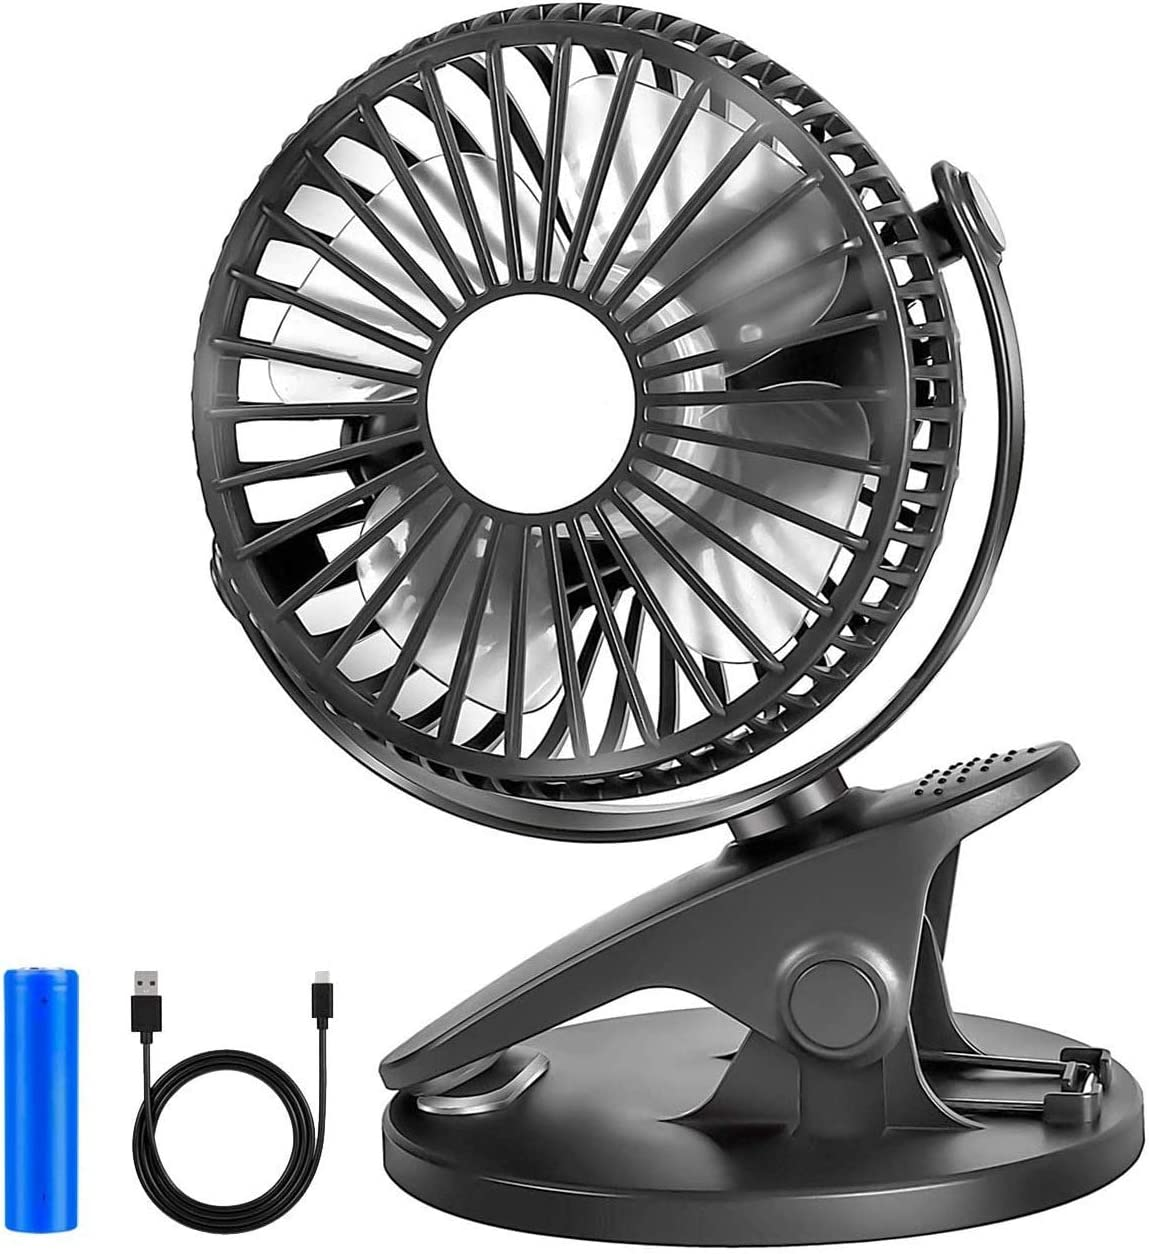 IGOSAIT Noiseless Portable Handheld Small Clip Charg USB Fan New product! New type Complete Free Shipping